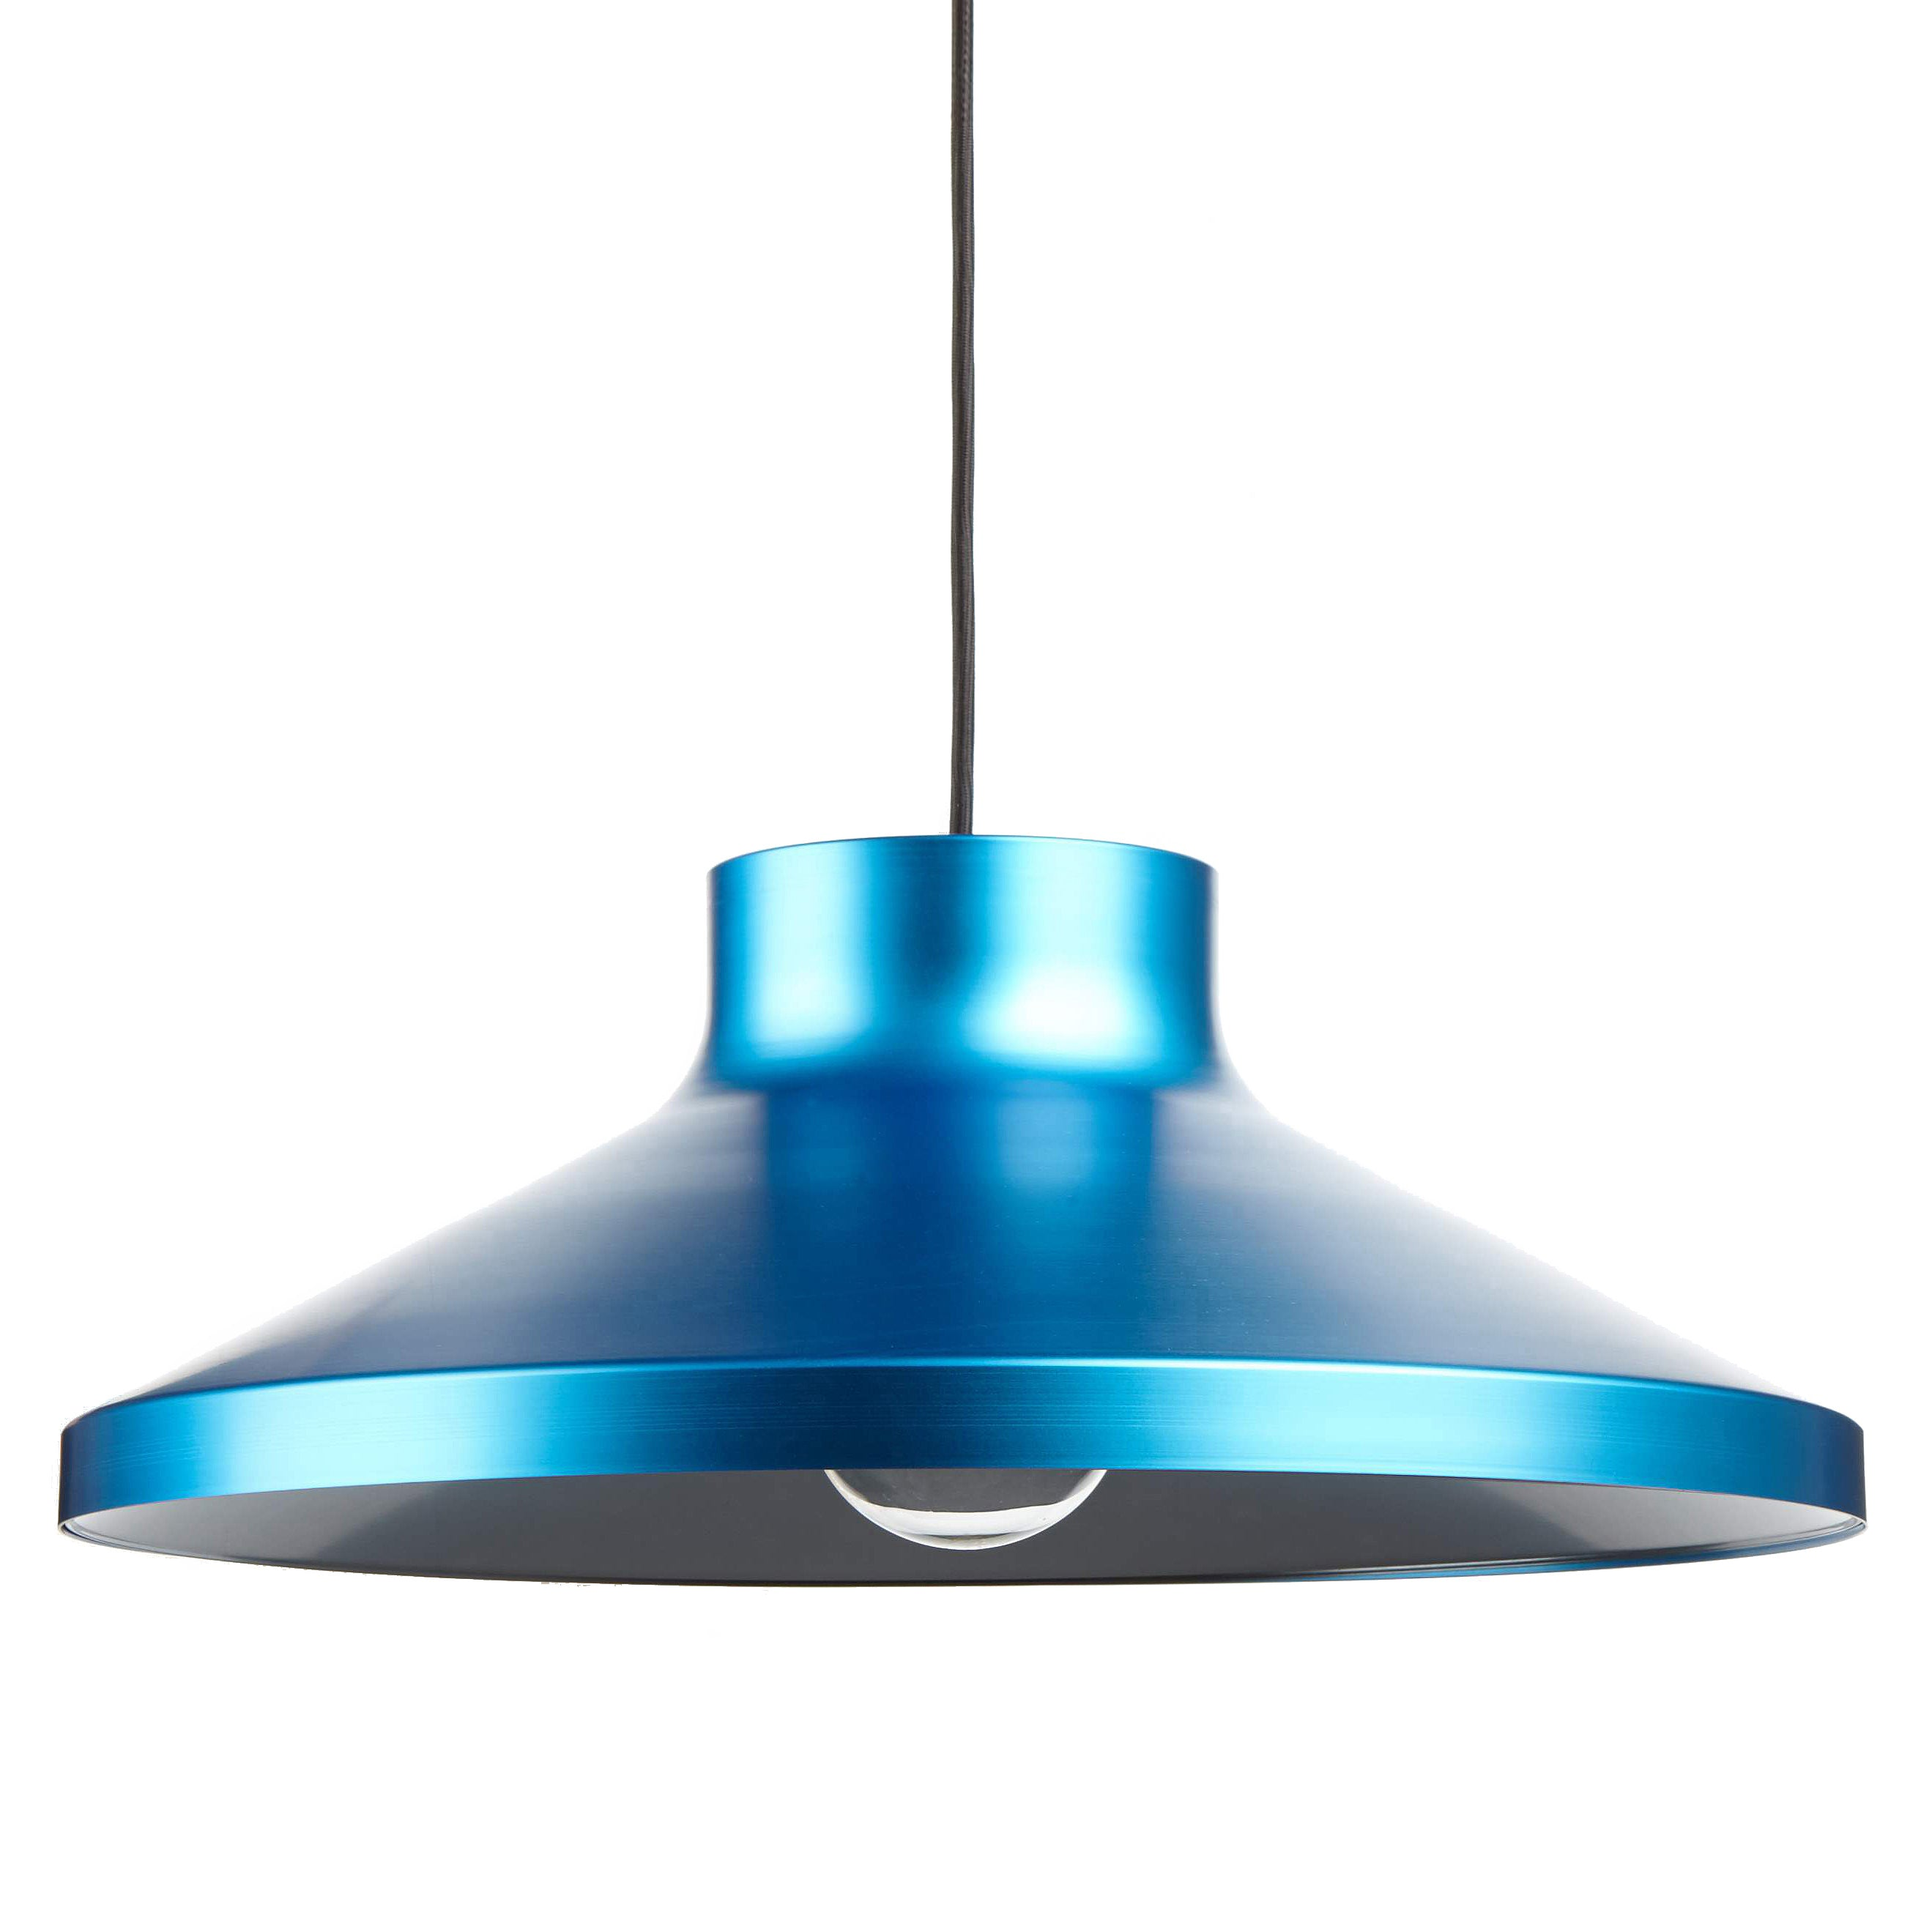 VGP1 Pendant Light: Blue + Grey